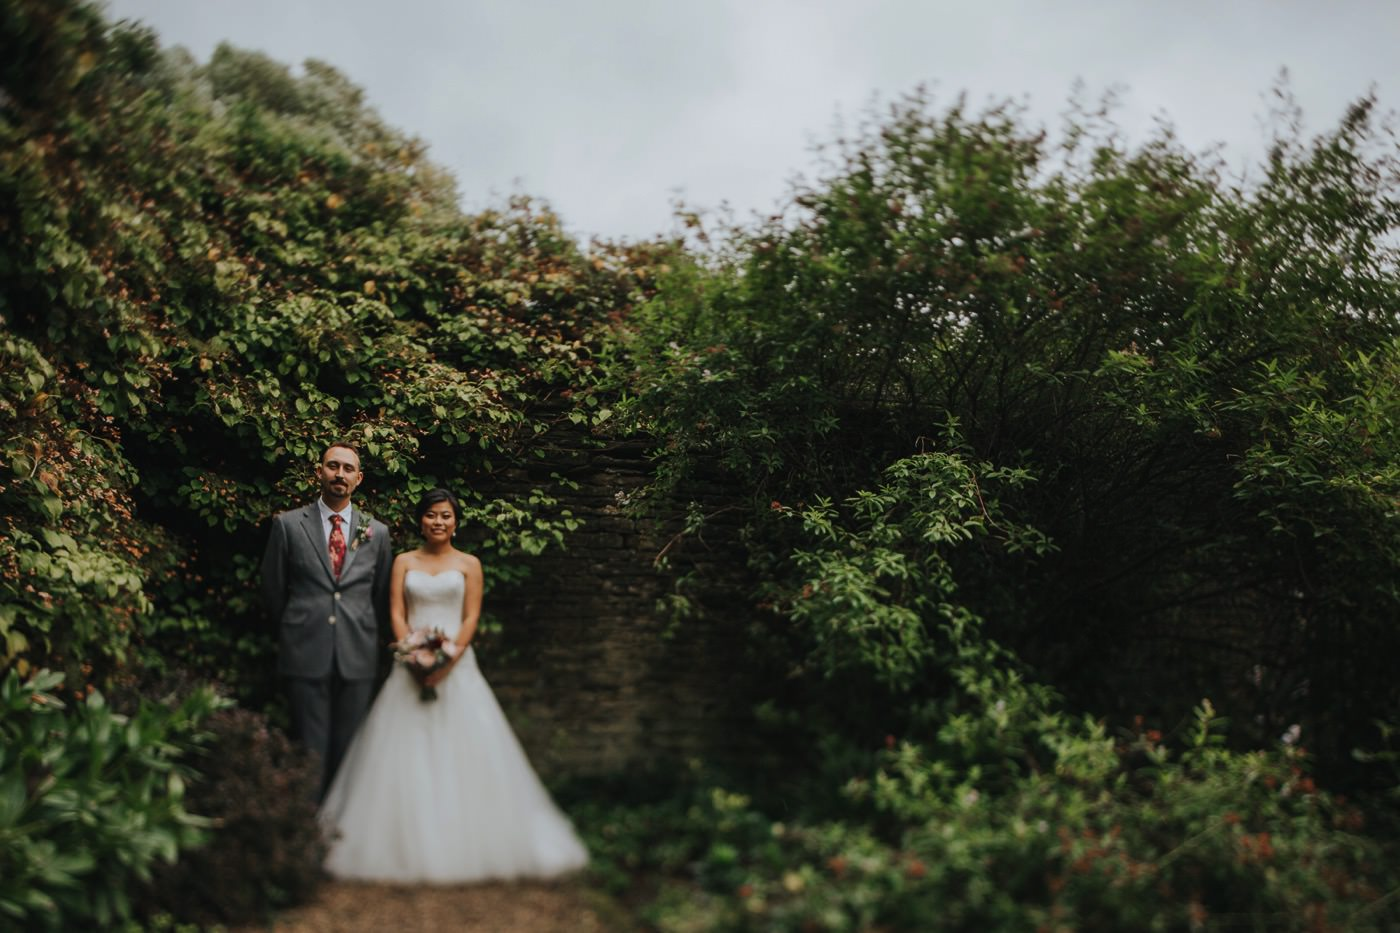 Nan & Laurence | East Riddlesden Hall wedding 61